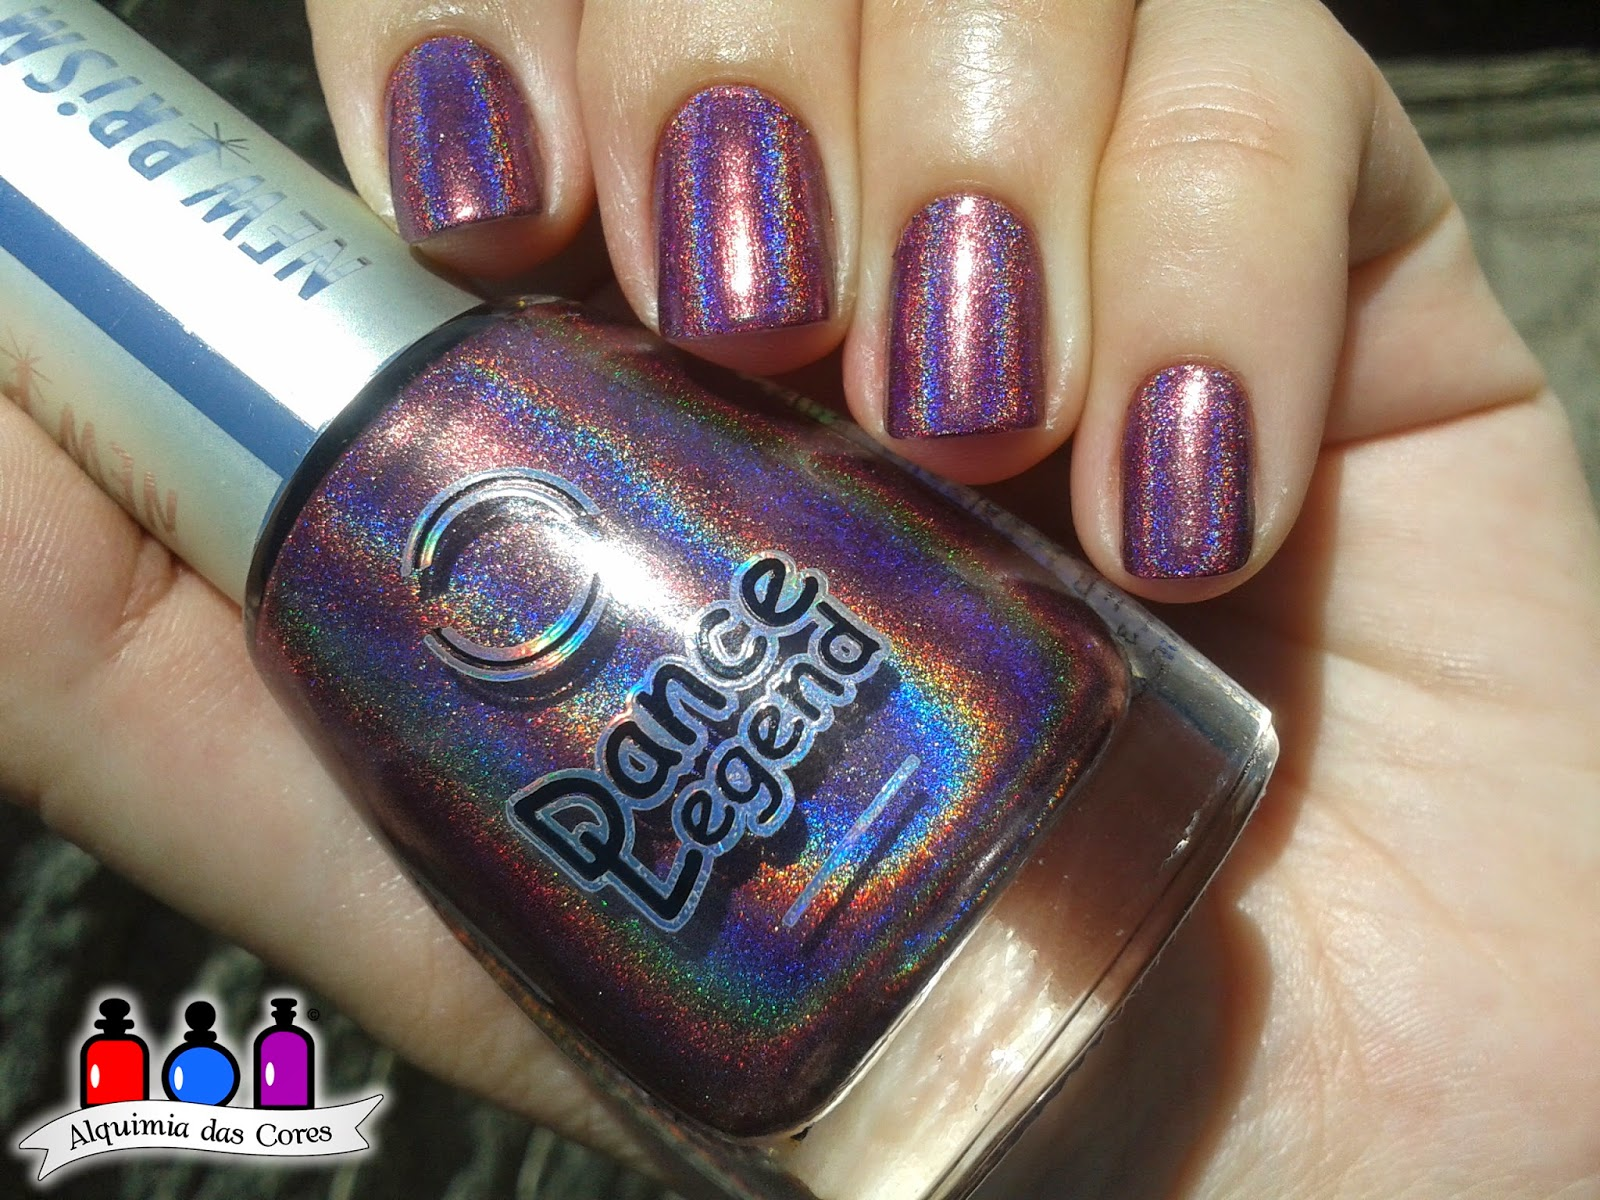 Dance Legend, Roxo, Holográfico, Optical Illusion, Caminie, esmalte, esmalte importado, nail polish